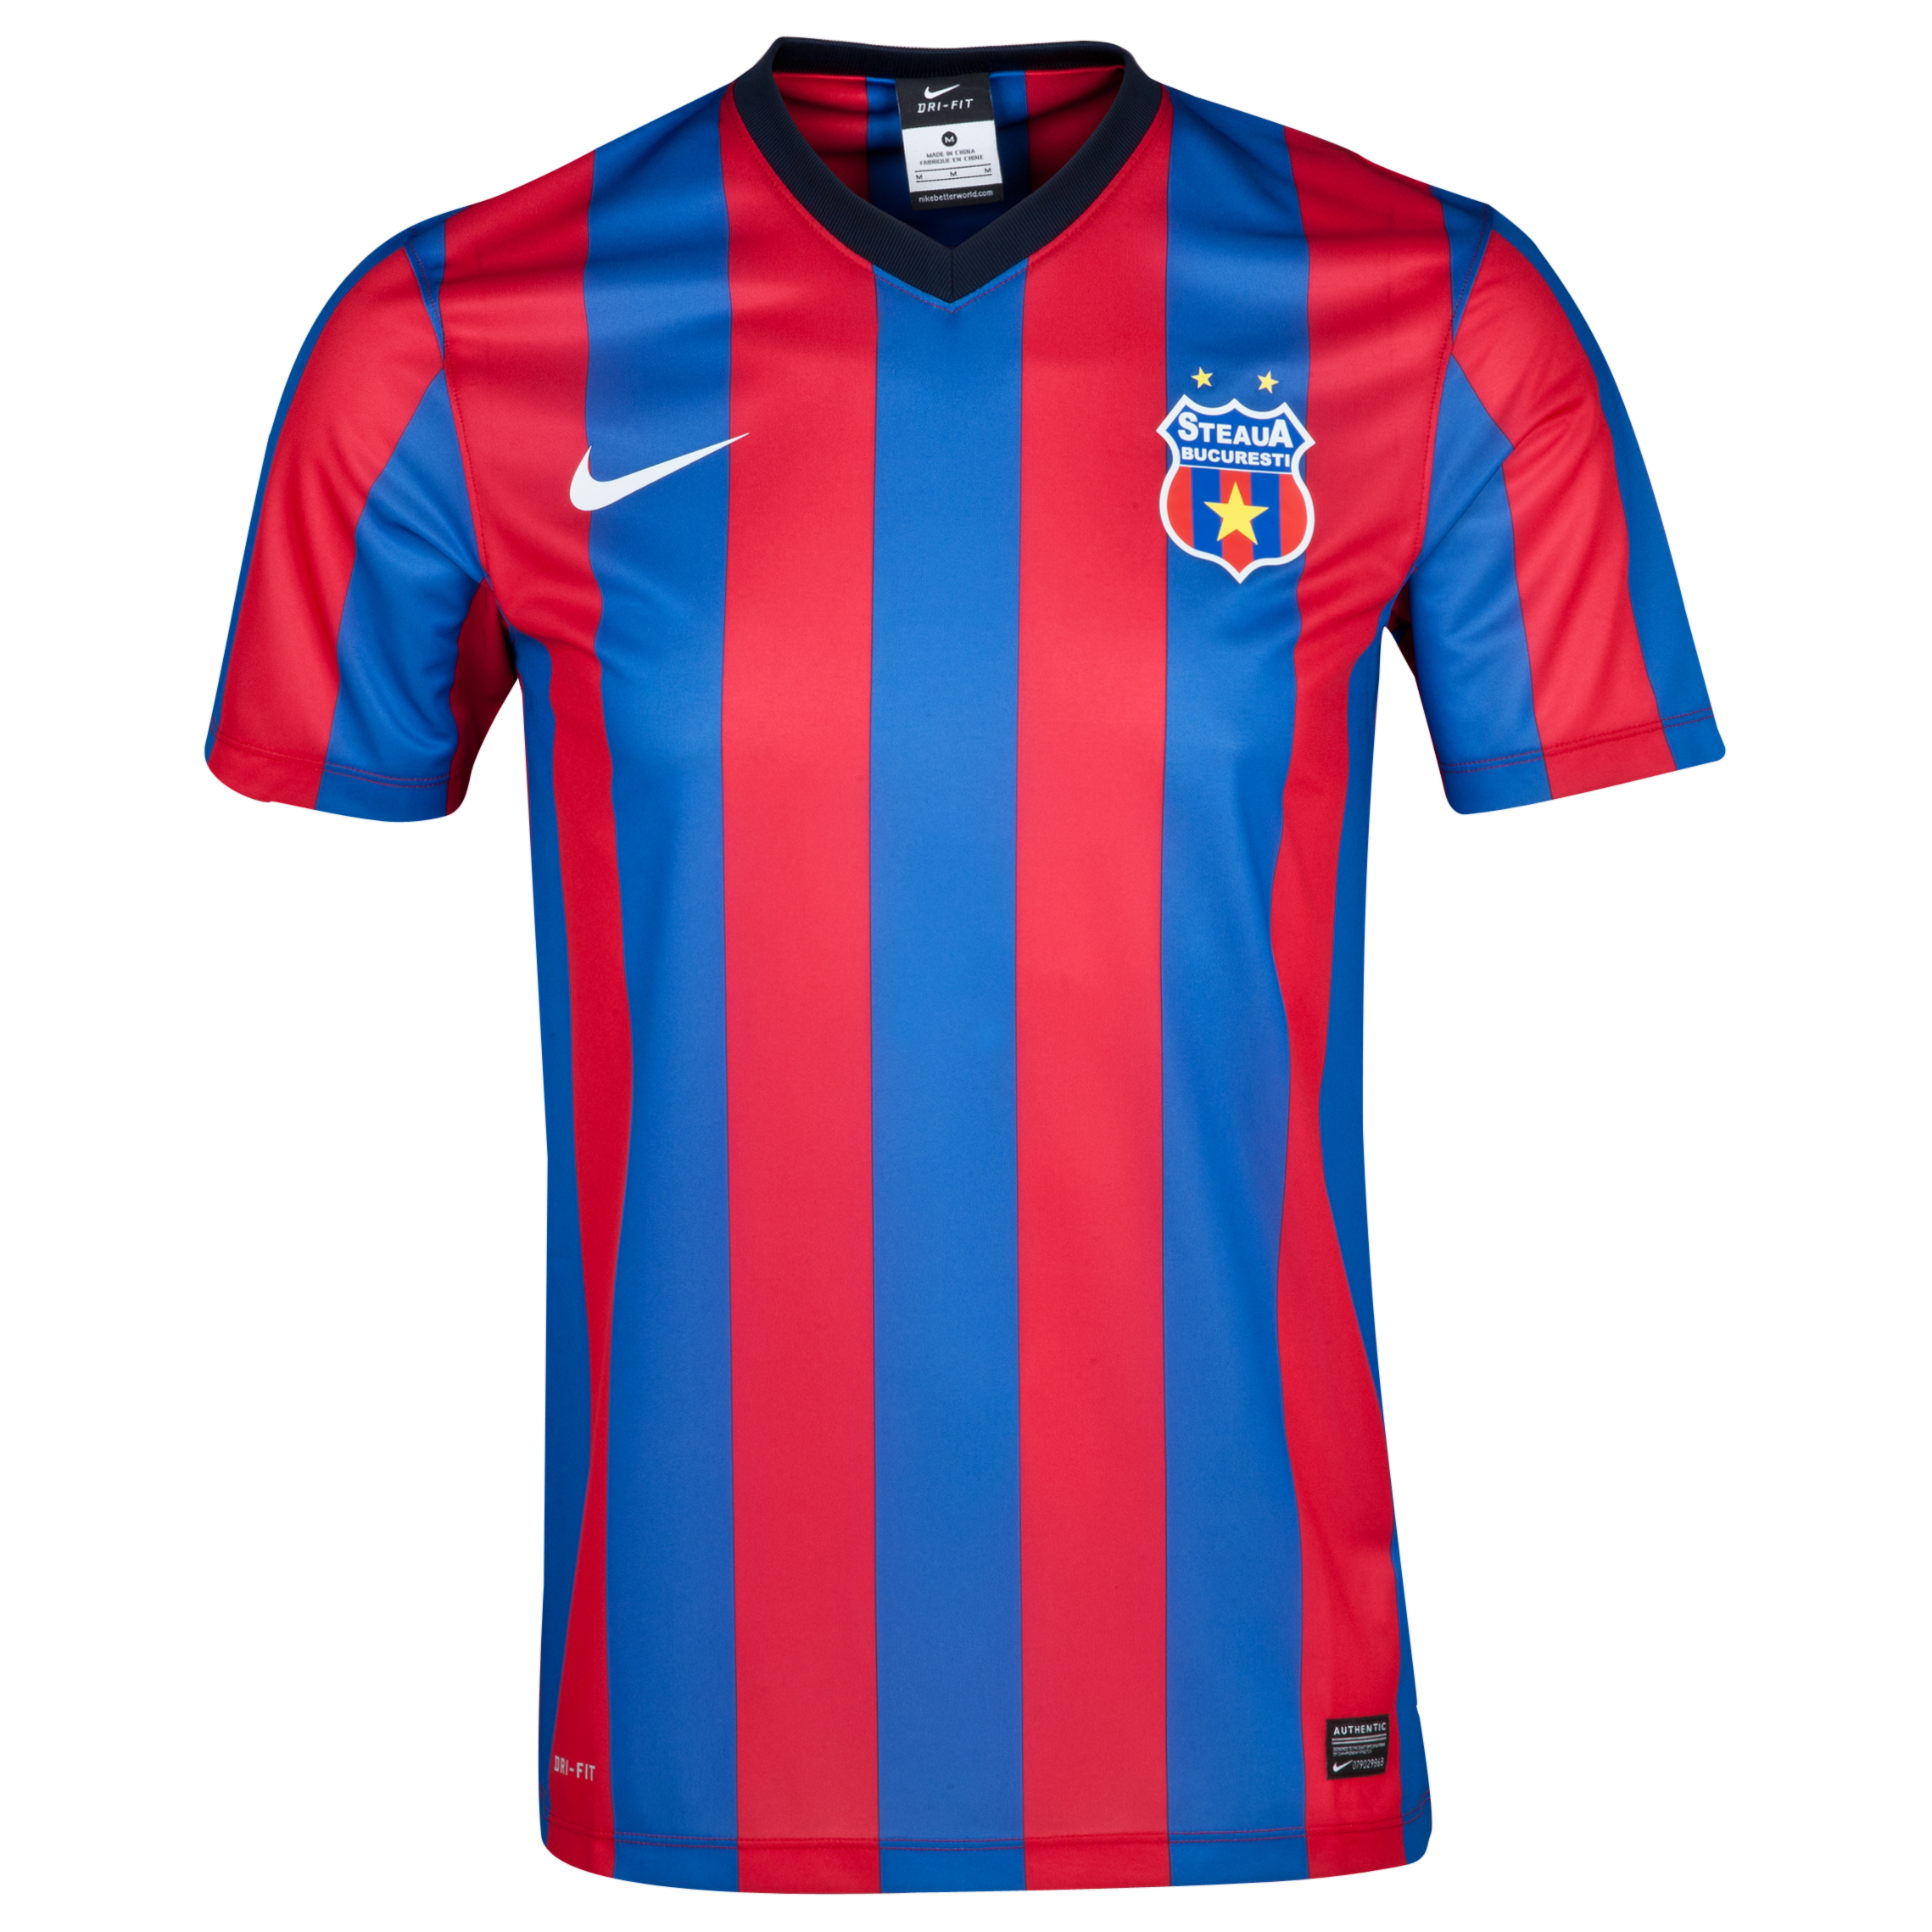 Steaua Bucharest Home Stadium Shirt 2013/14